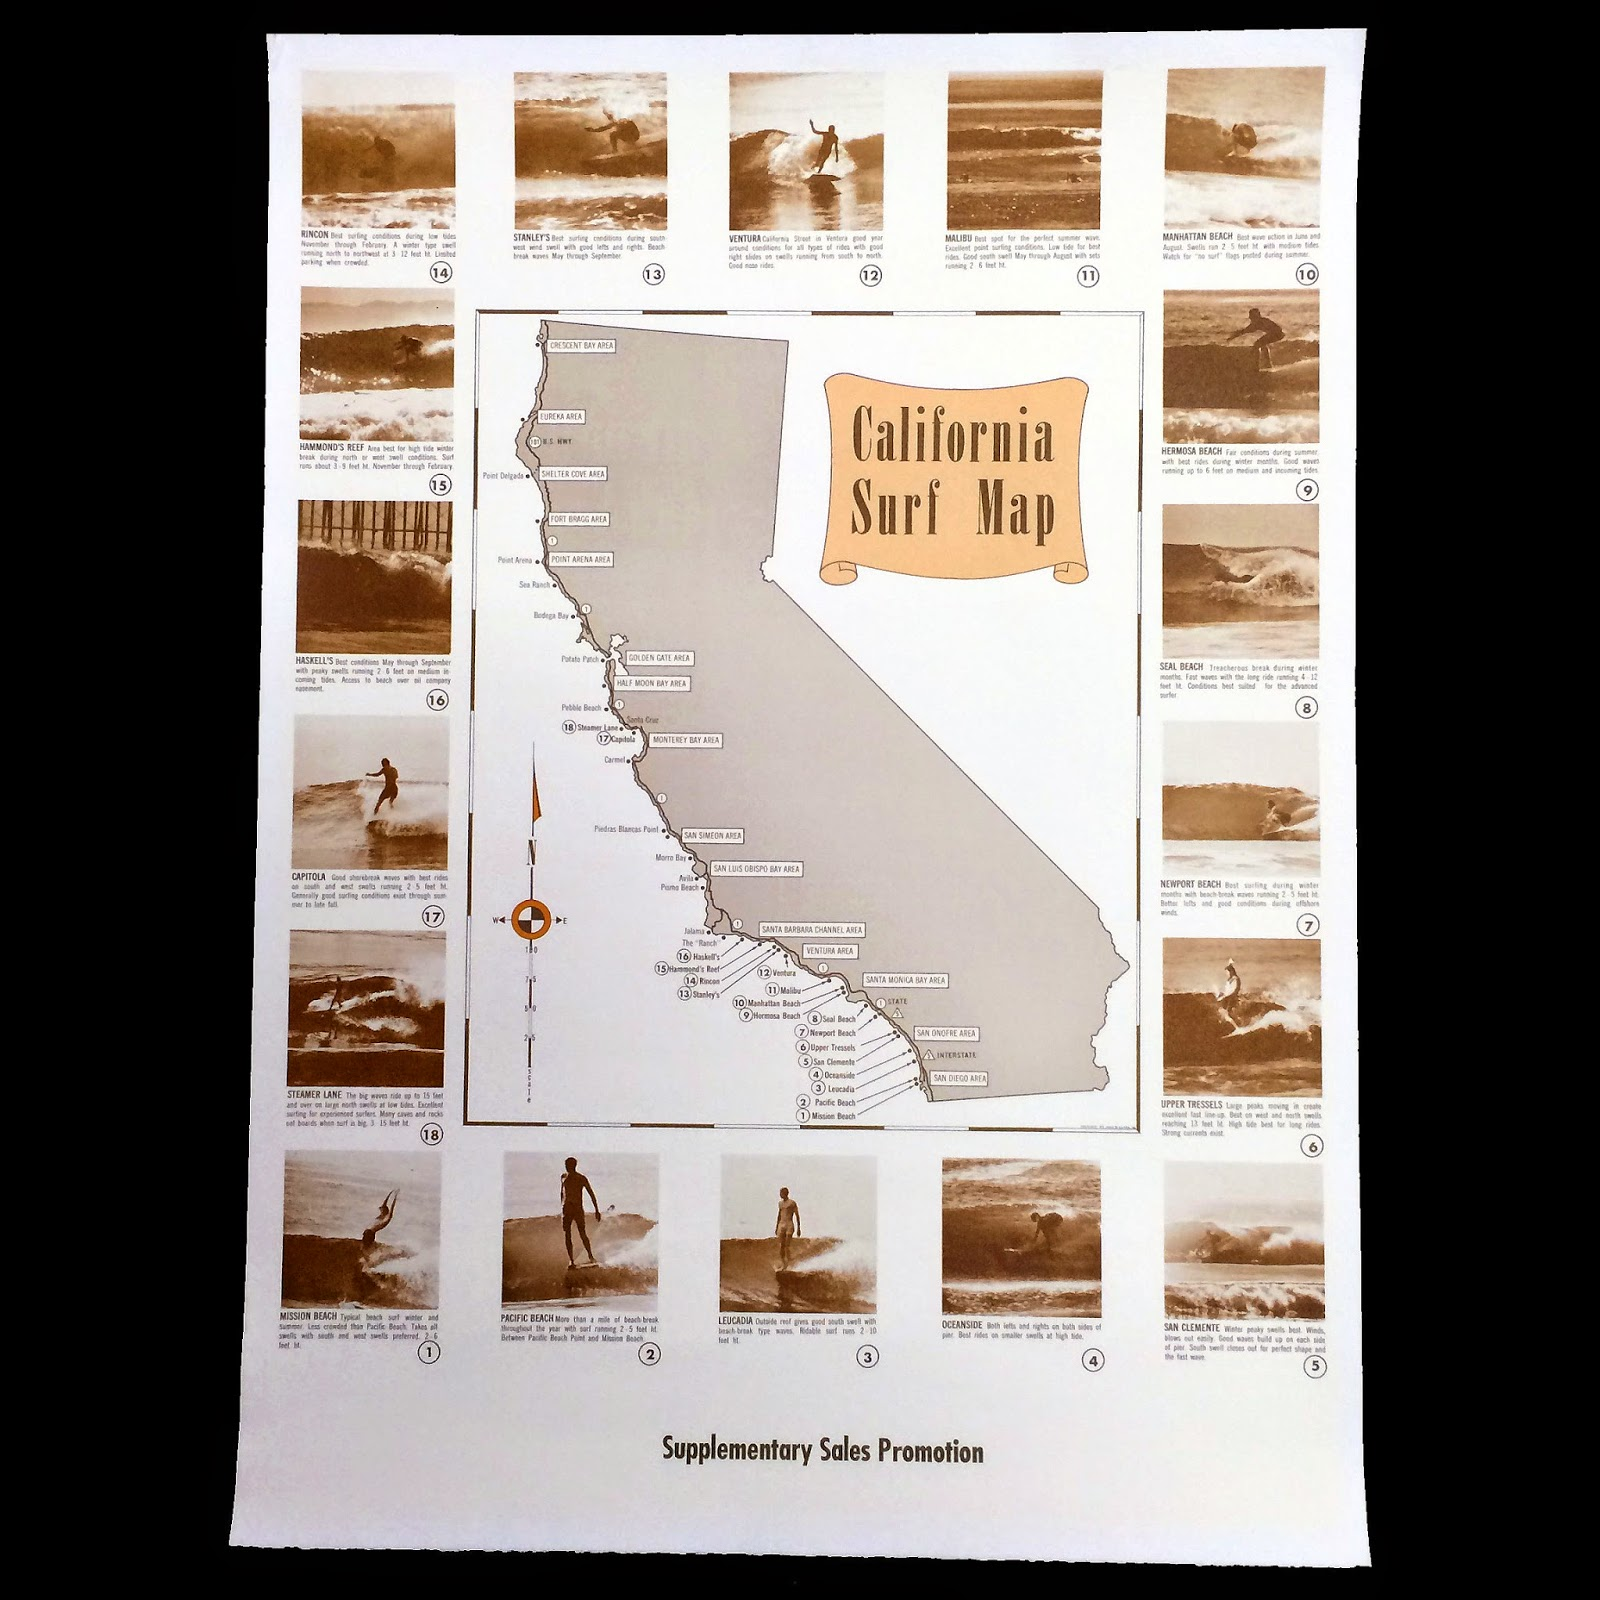 Surfing Heritage Culture Center Vintage Map Of California Surf Spots